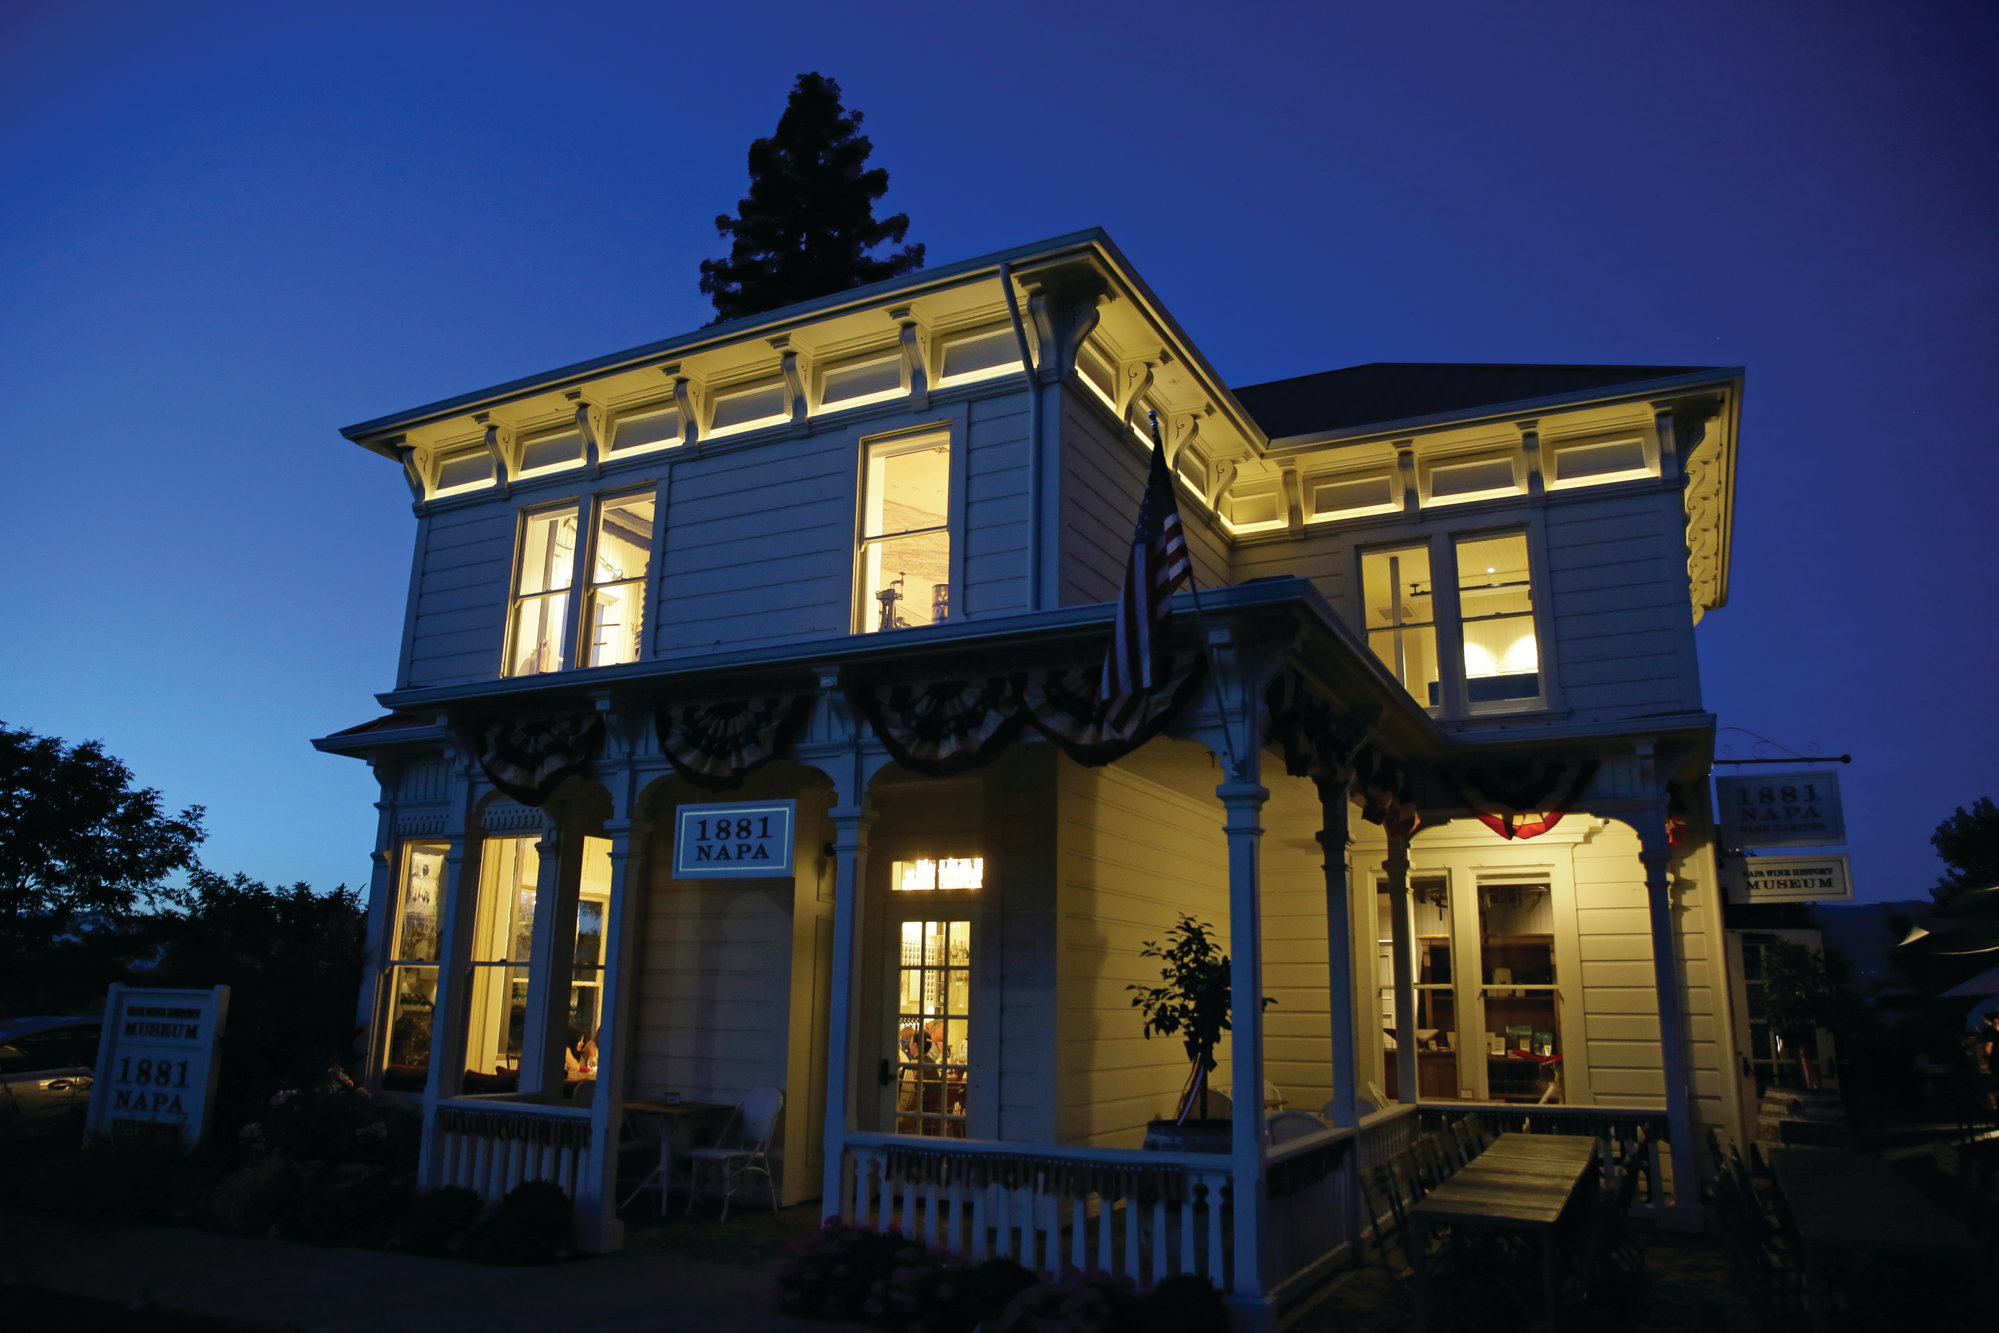 Dusk falls on 1881 Napa in Oakville, California.